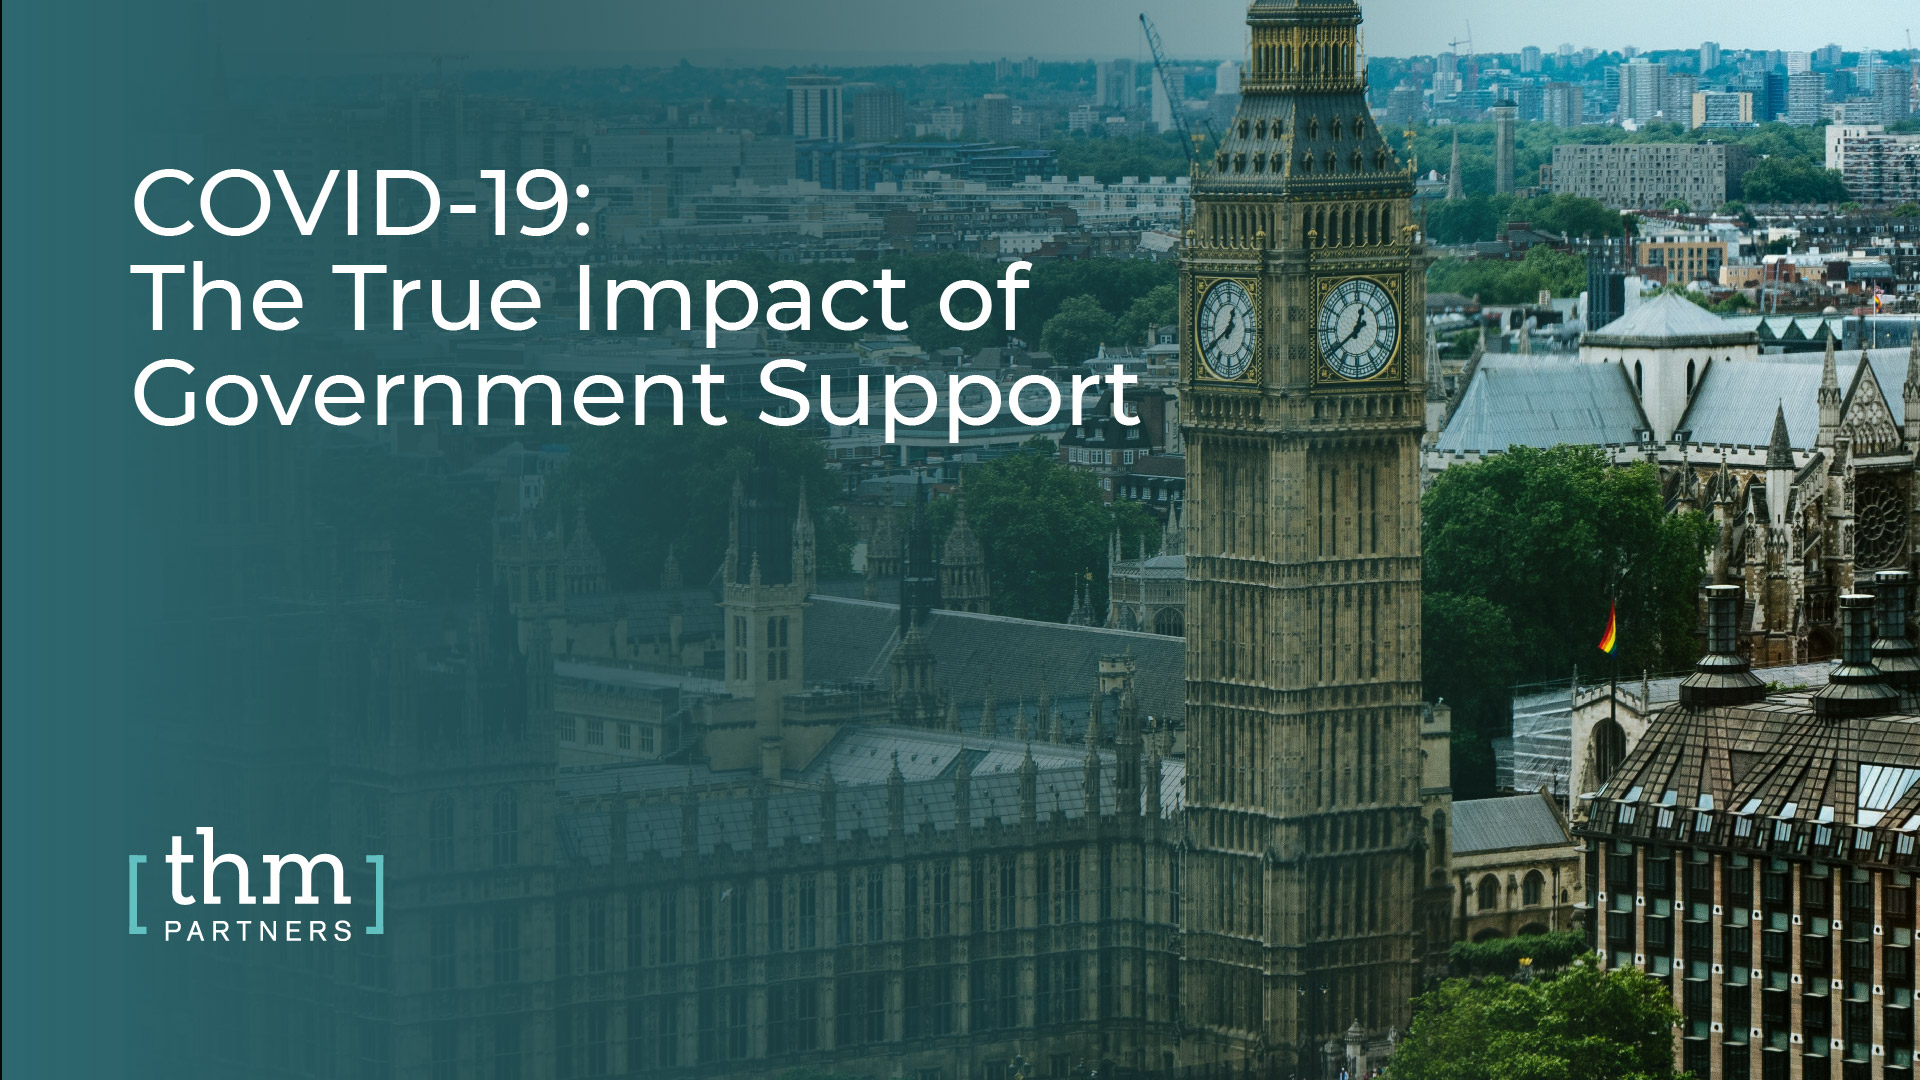 COVID-19: The true impact of Government Support